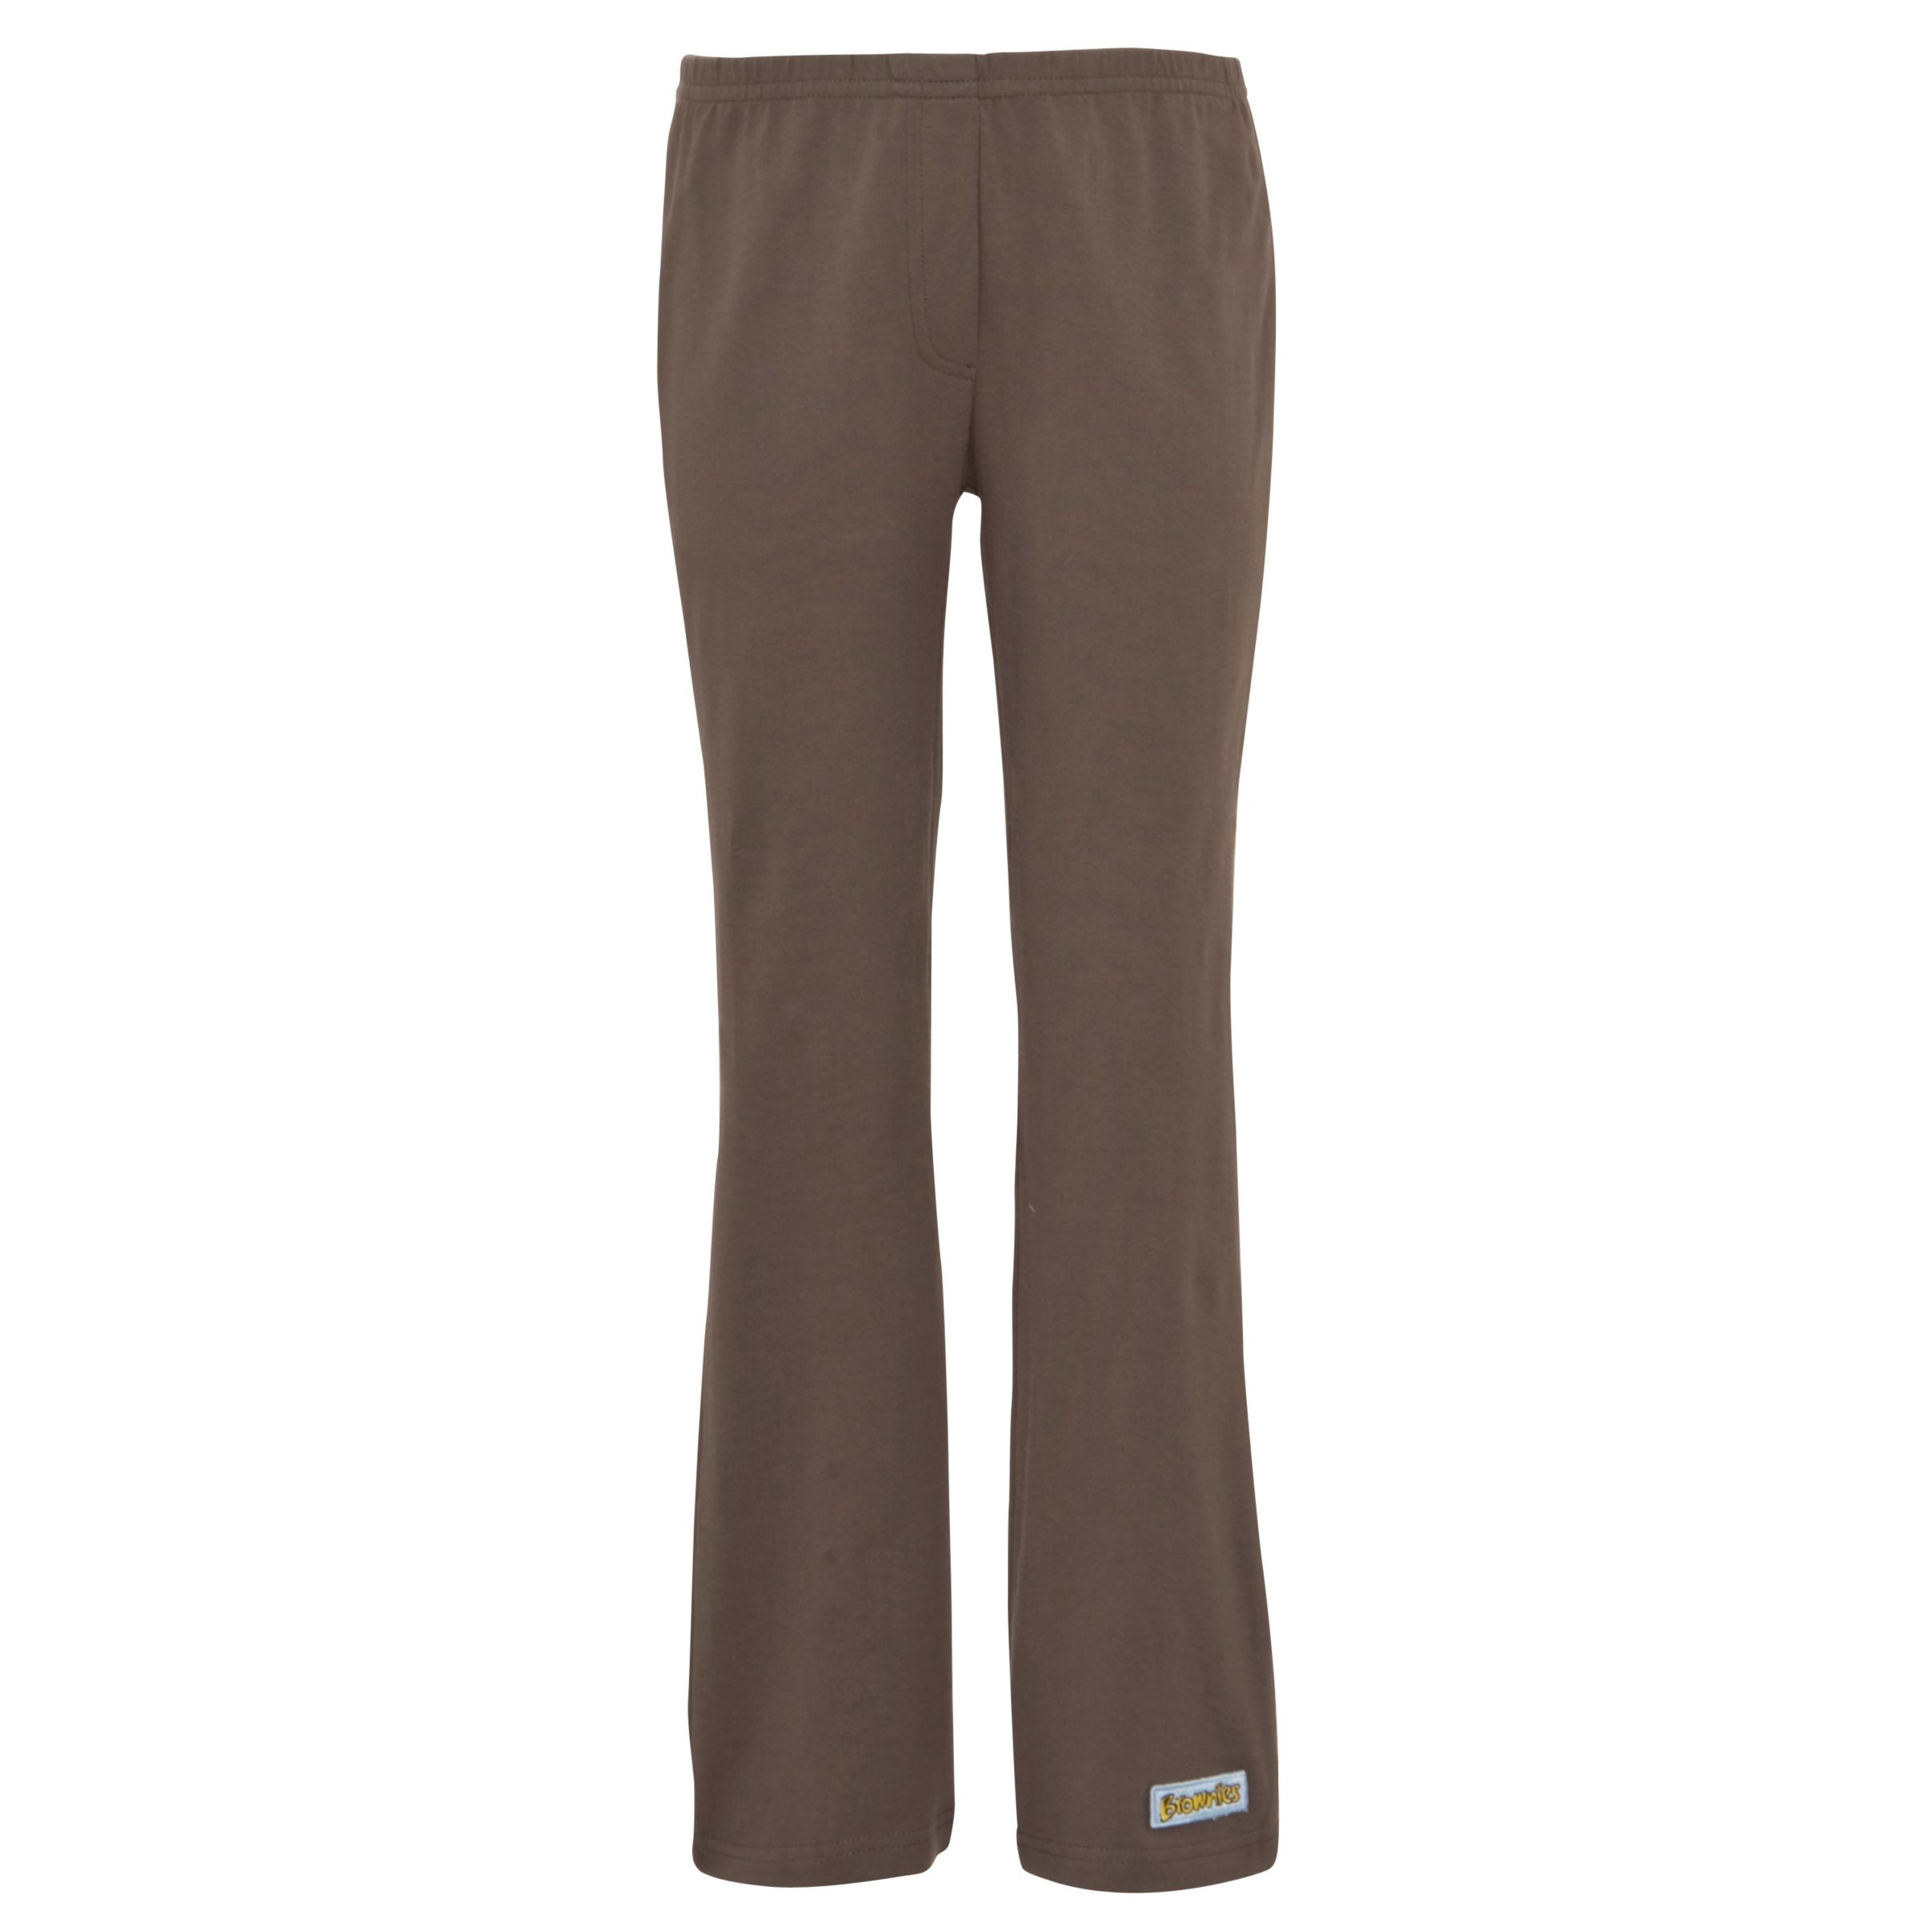 Brownies Brownies Uniform Leggings, Brown